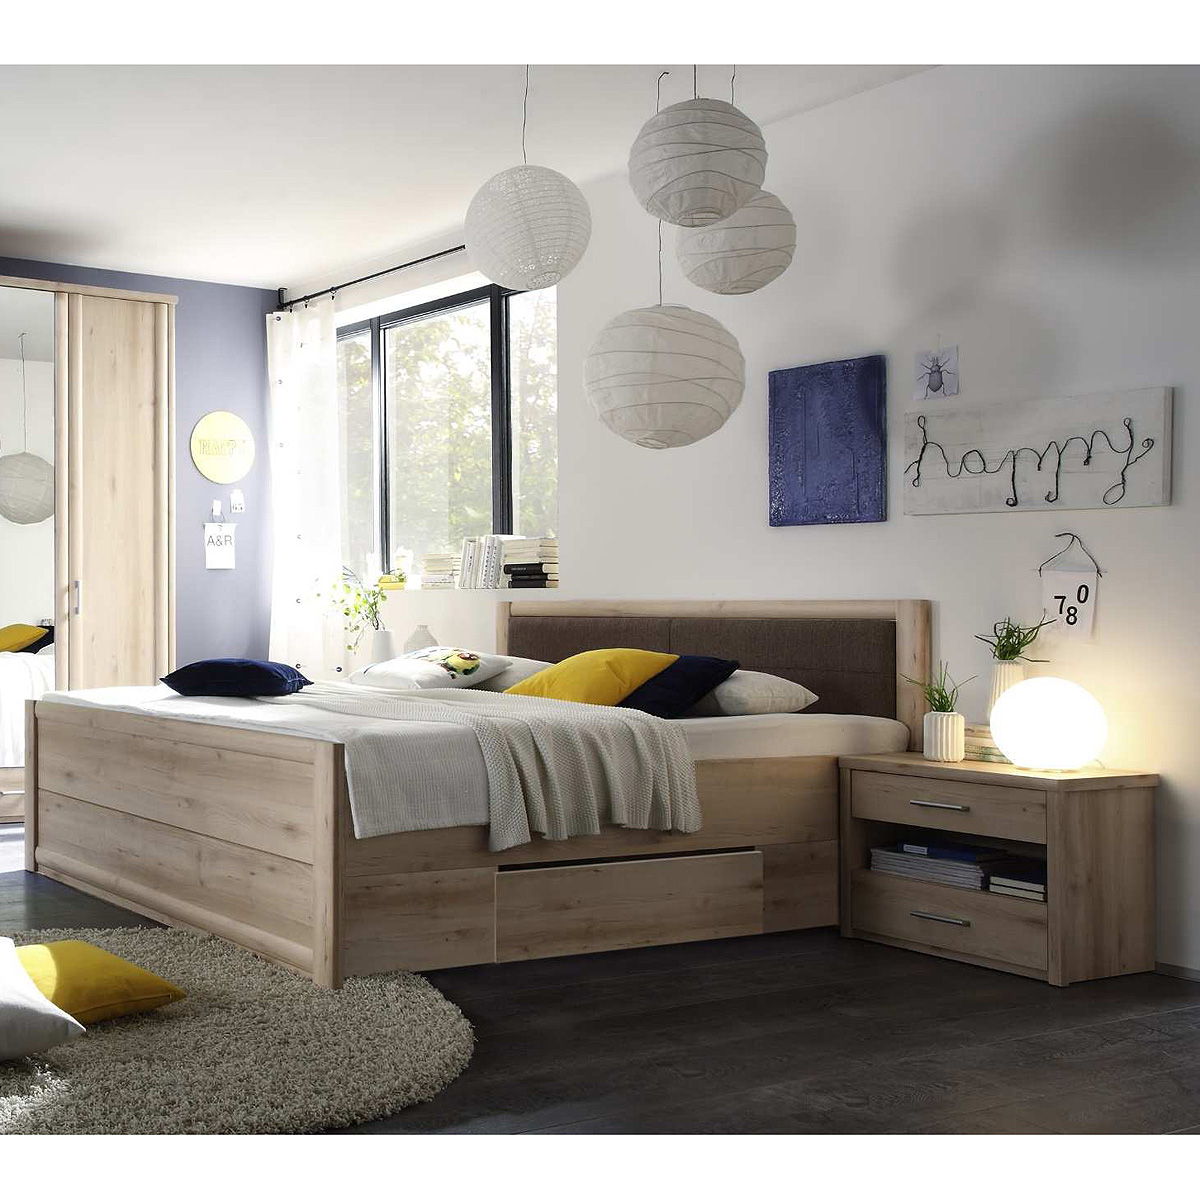 bettanlage classic bett nachtkommode in buche mit schubk sten 180x200 ebay. Black Bedroom Furniture Sets. Home Design Ideas